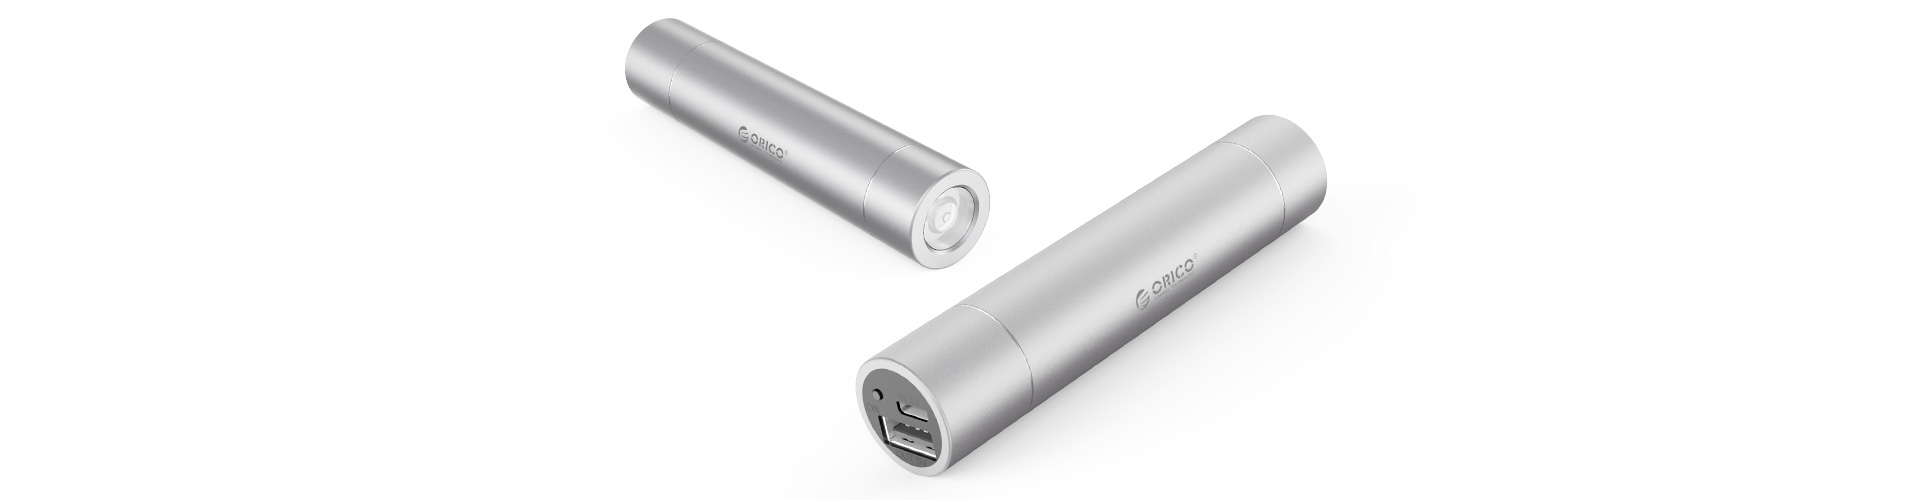 Advanced LG battery cell